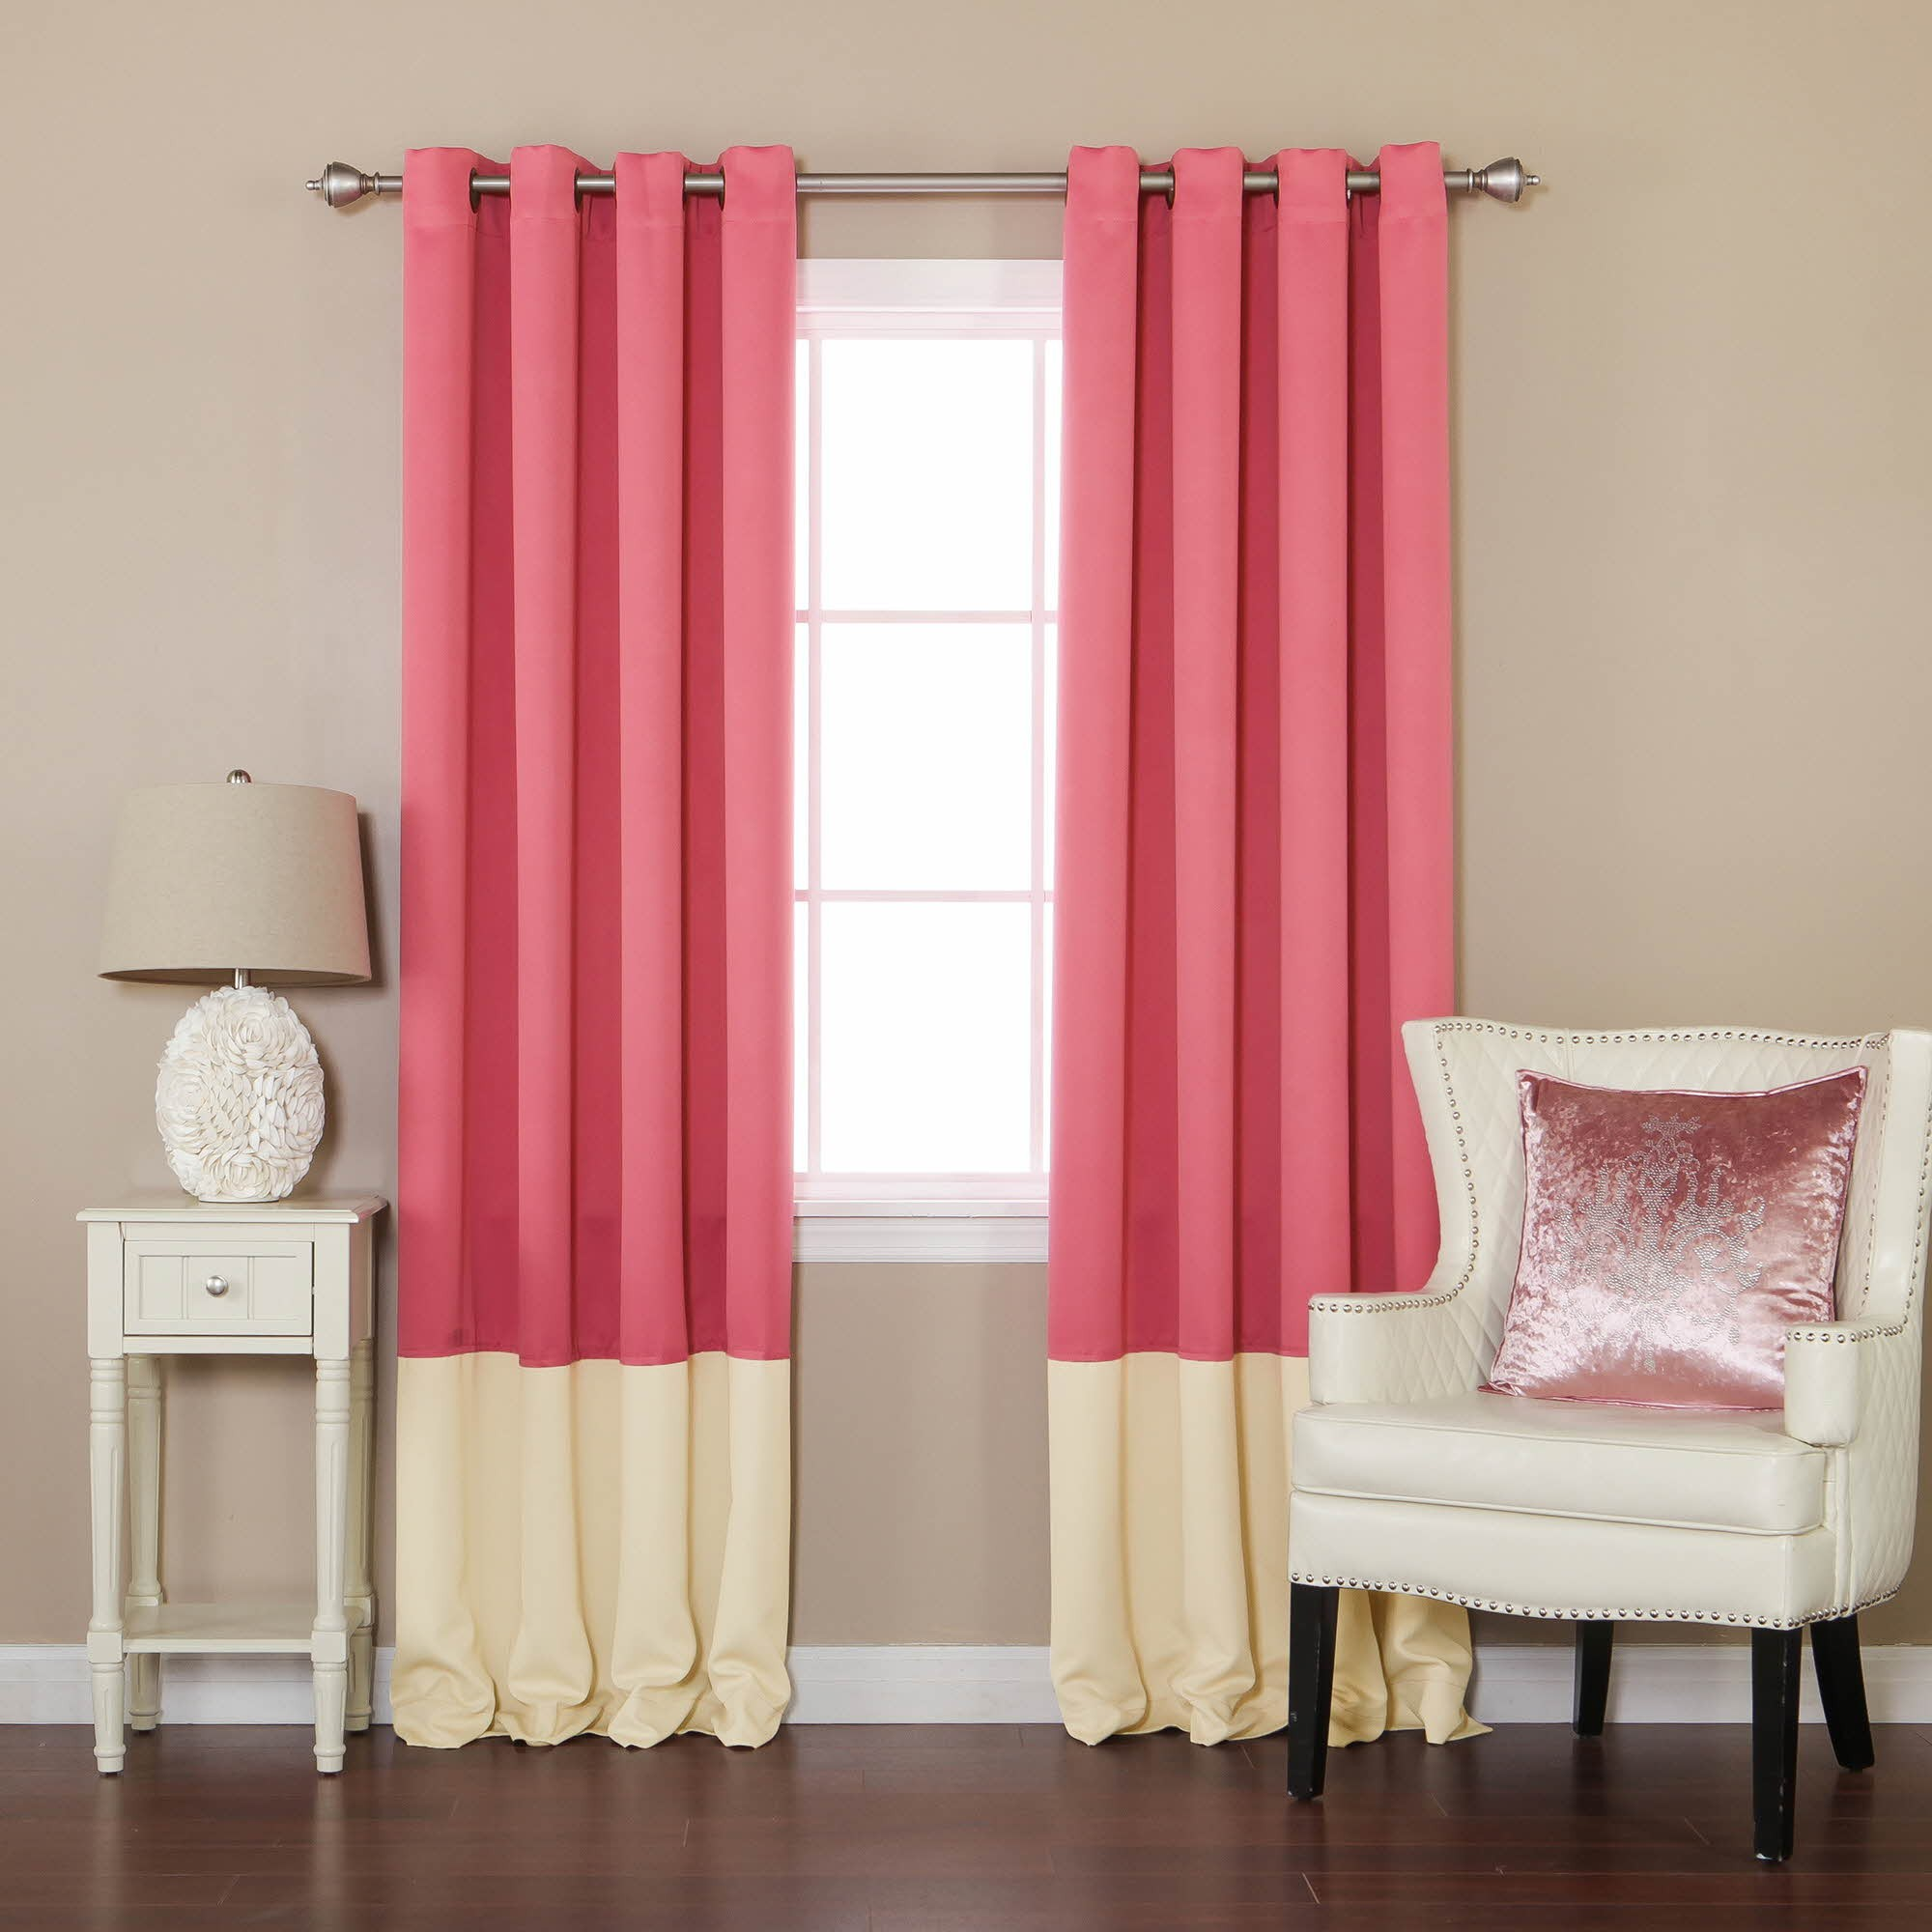 Small blackout curtains